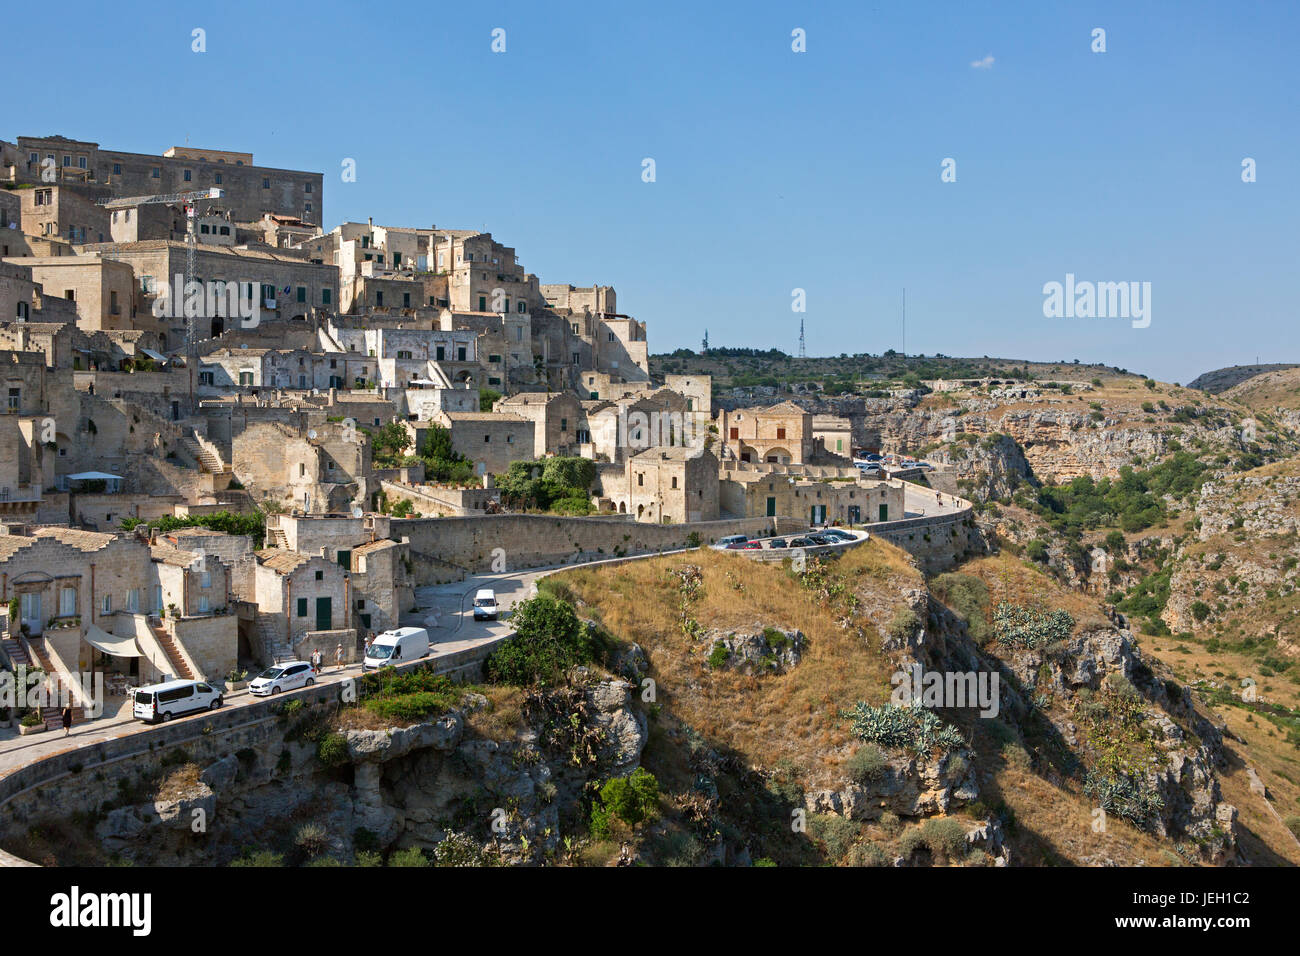 Holiday destination, Matera, Citta' dei sassi, Basilicata, Italy,  World Heritage Site by UNESCO since 1993 - Stock Image